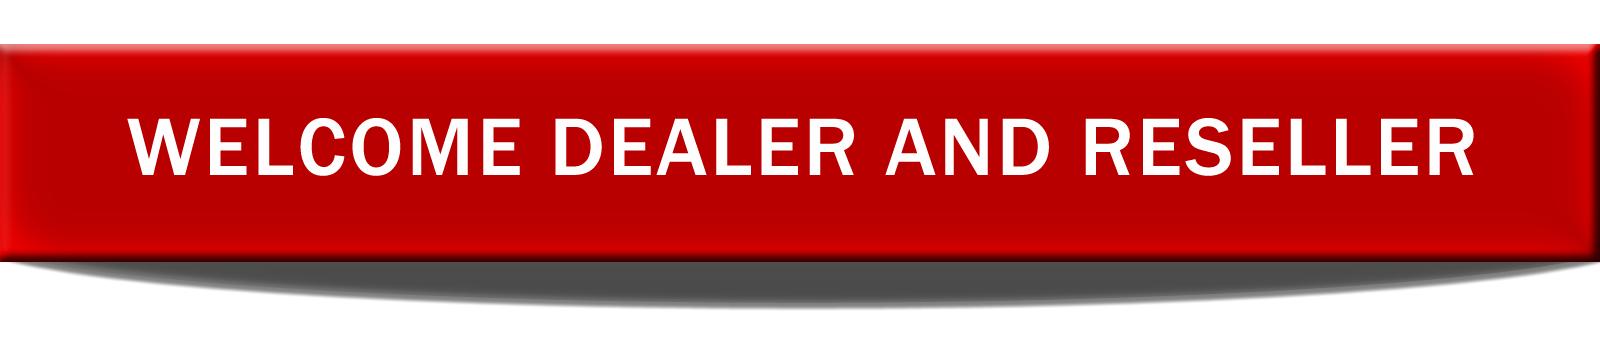 welcome-dealer-and-reseller